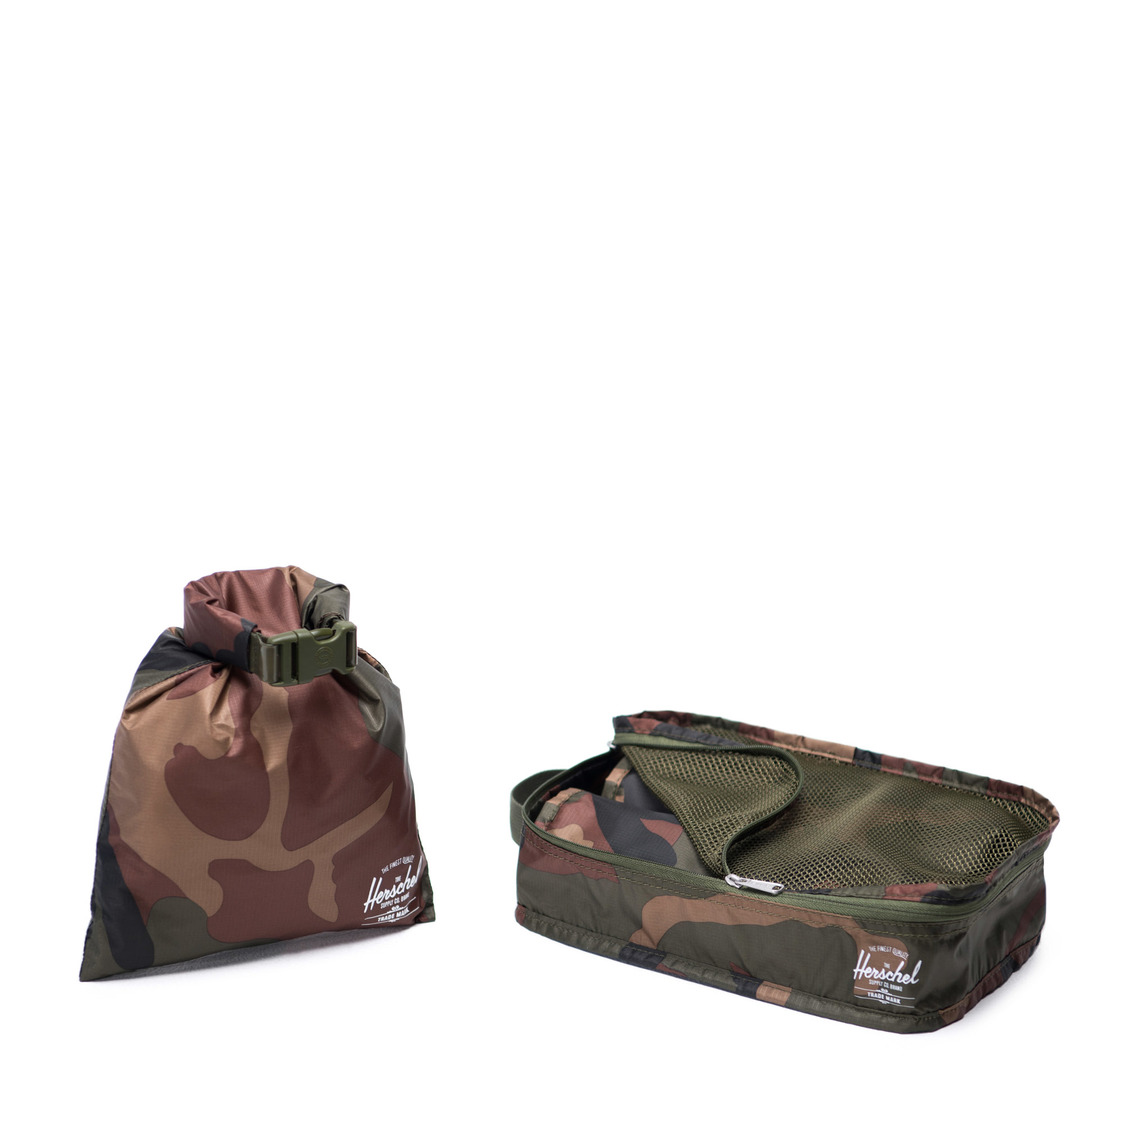 Travel Organizers Woodland Camo 10472-02507-OS